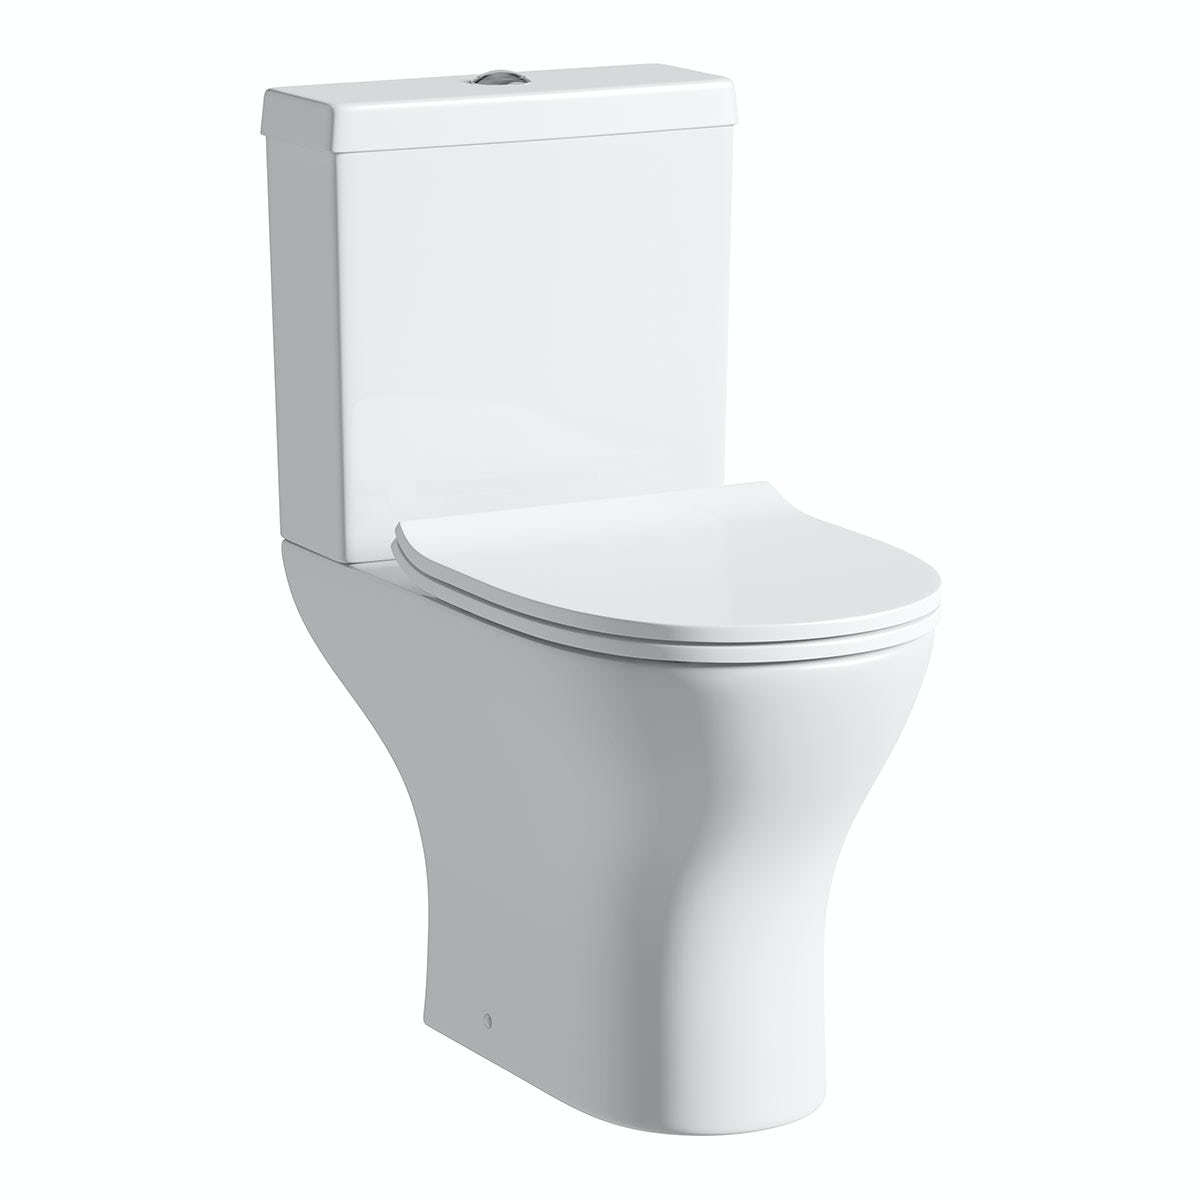 Orchard Derwent round compact close coupled toilet with luxury soft close seat with pan connector